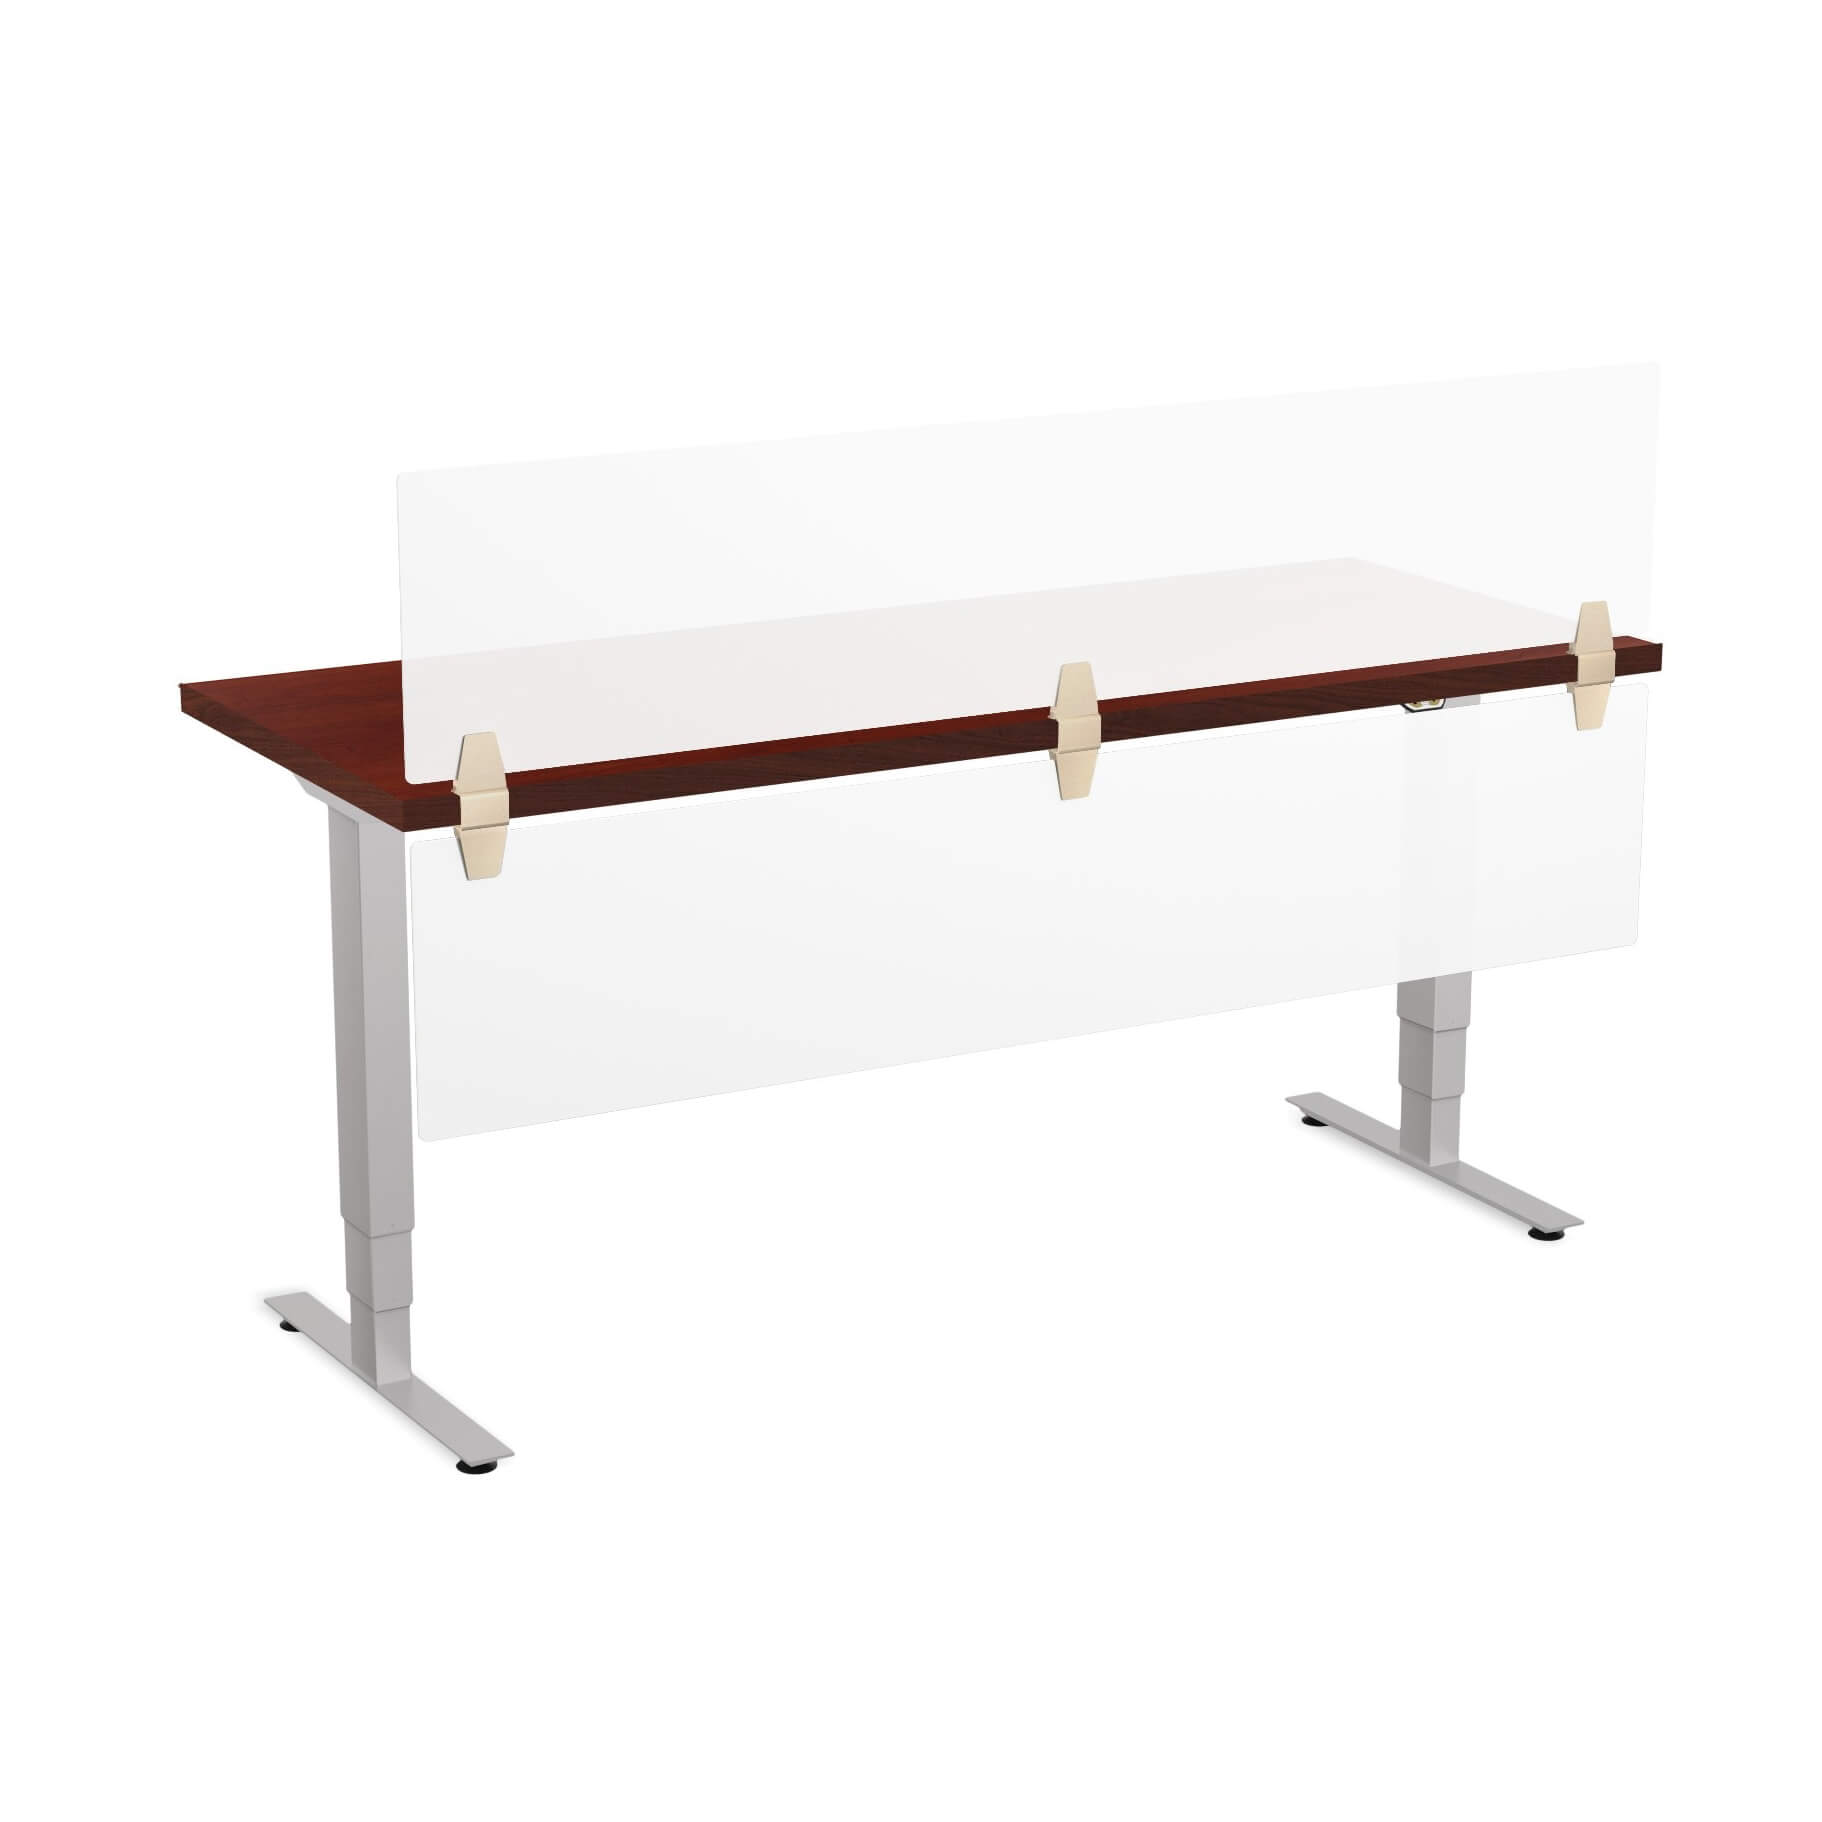 sit-stand-desk-height-adjustable-work-table-1-2-3.jpg